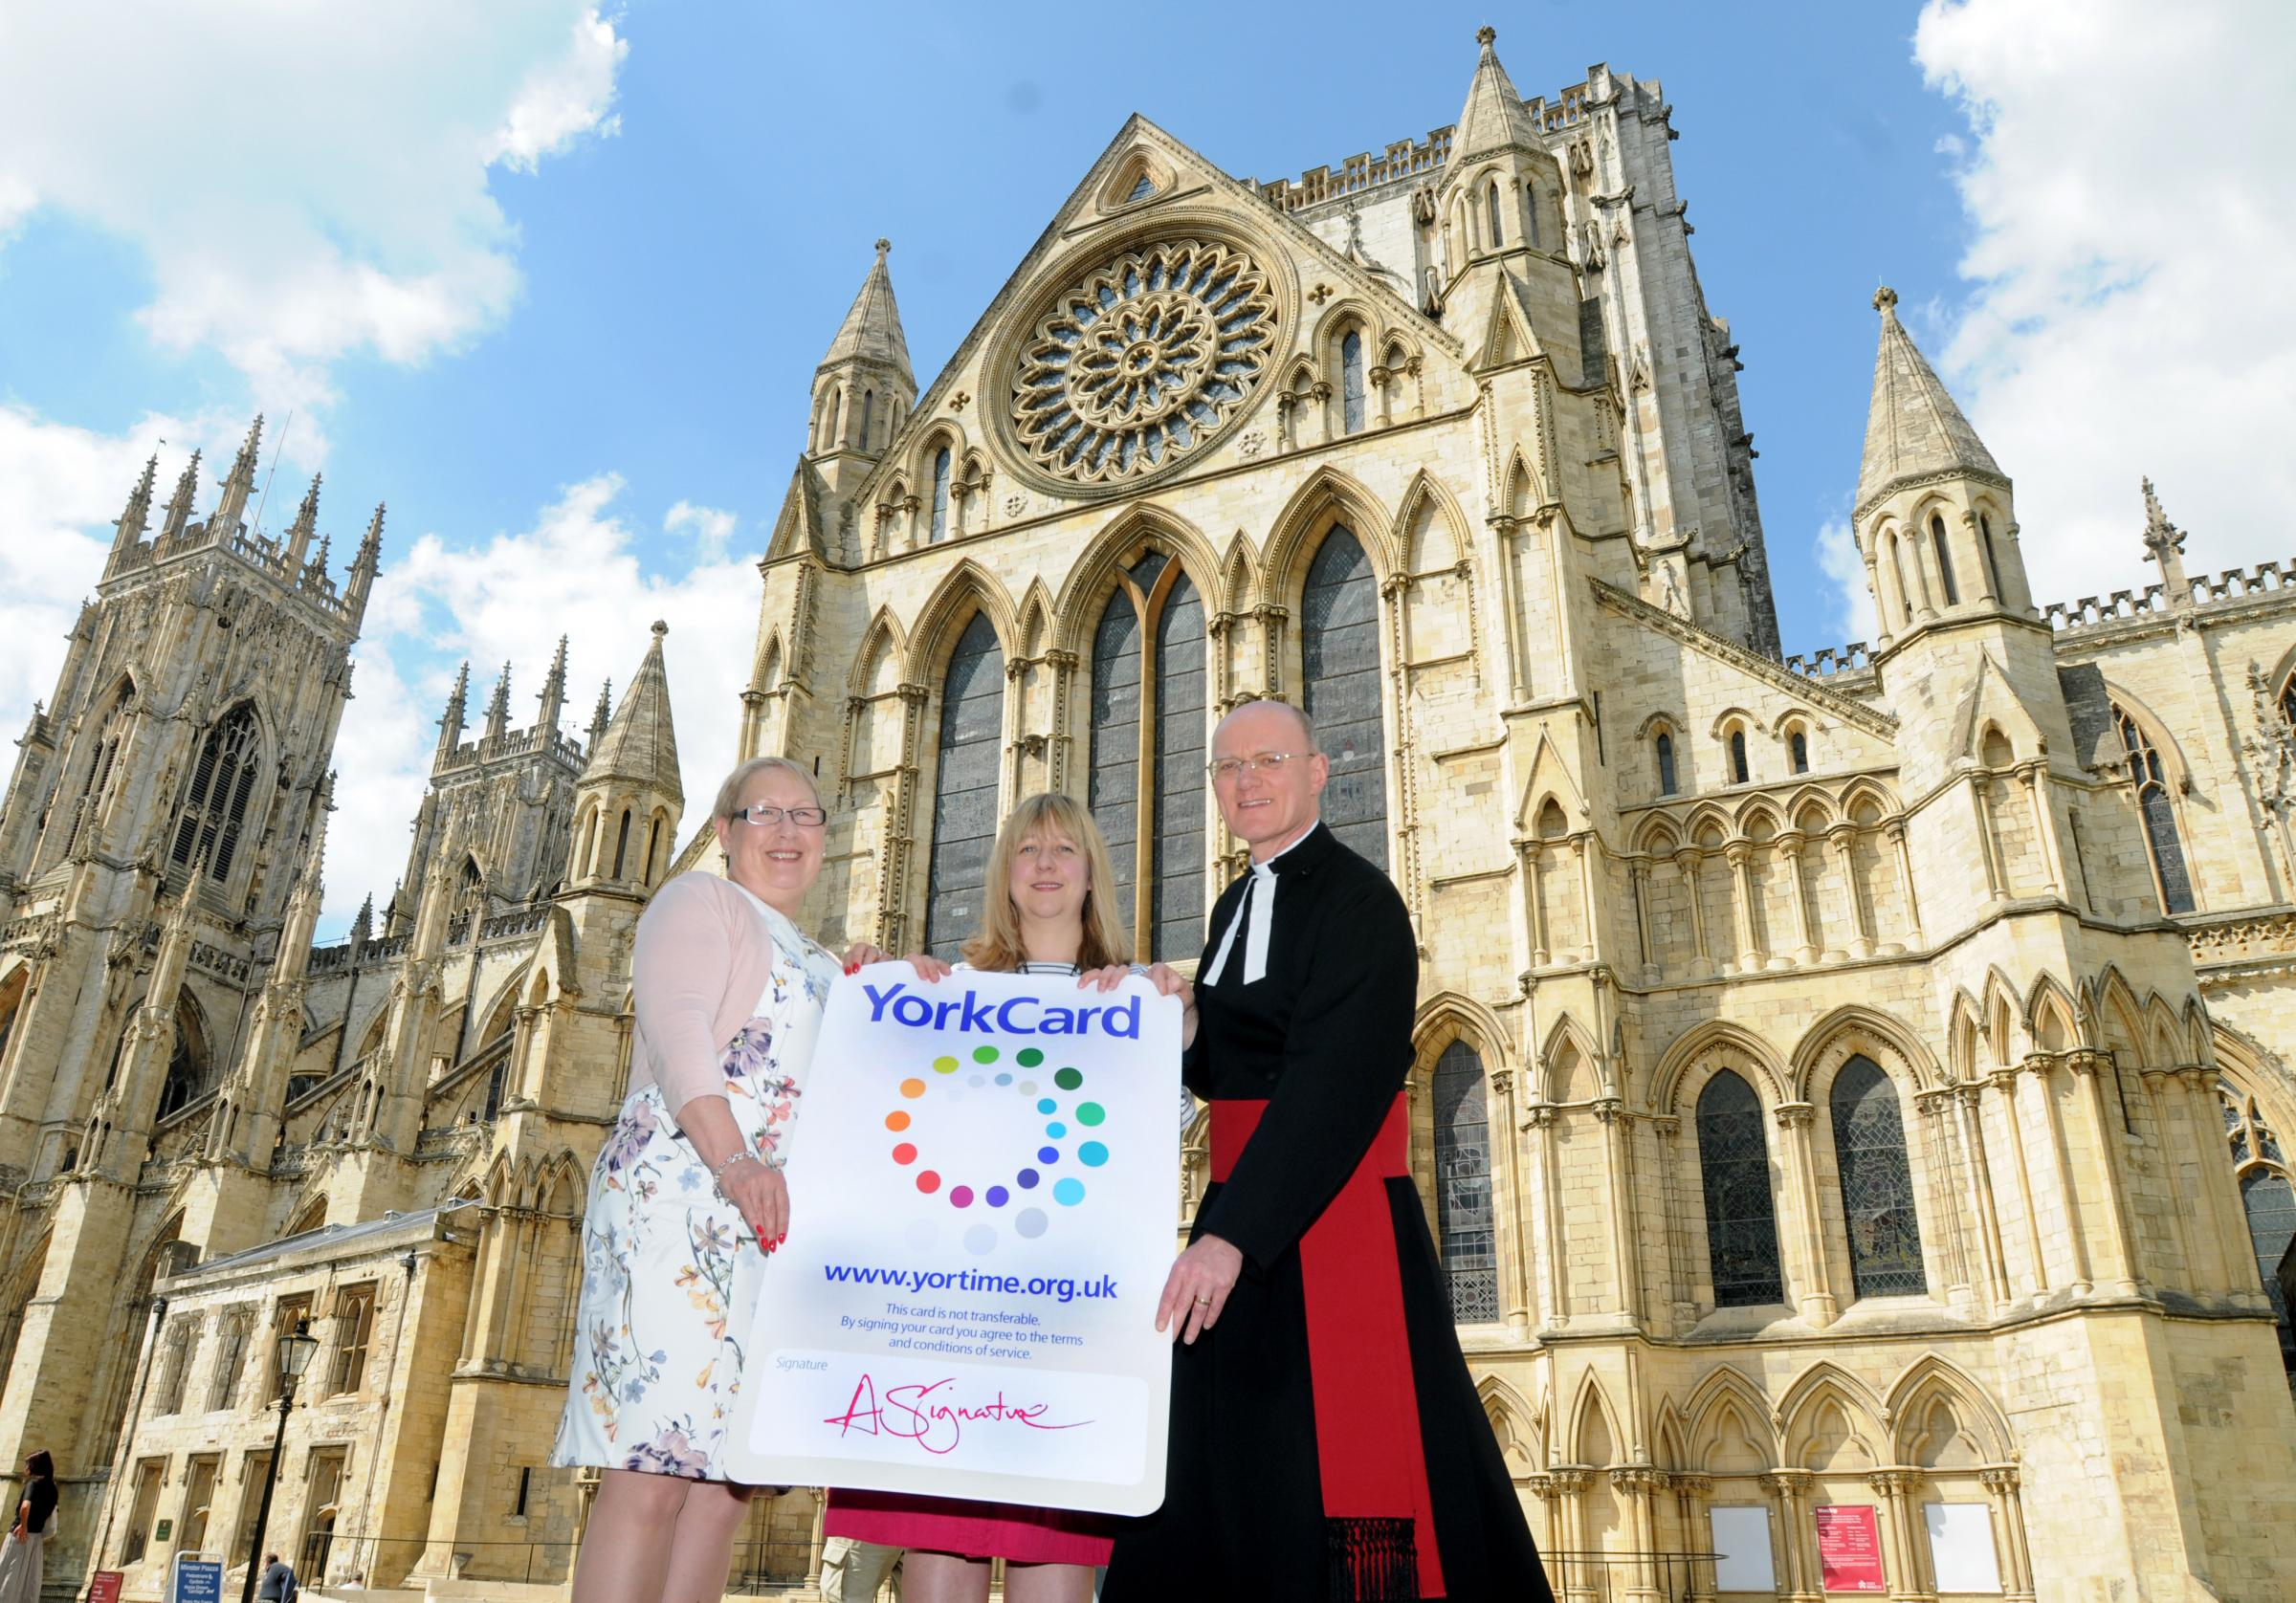 Minster teams up with York Card to give residents free entry